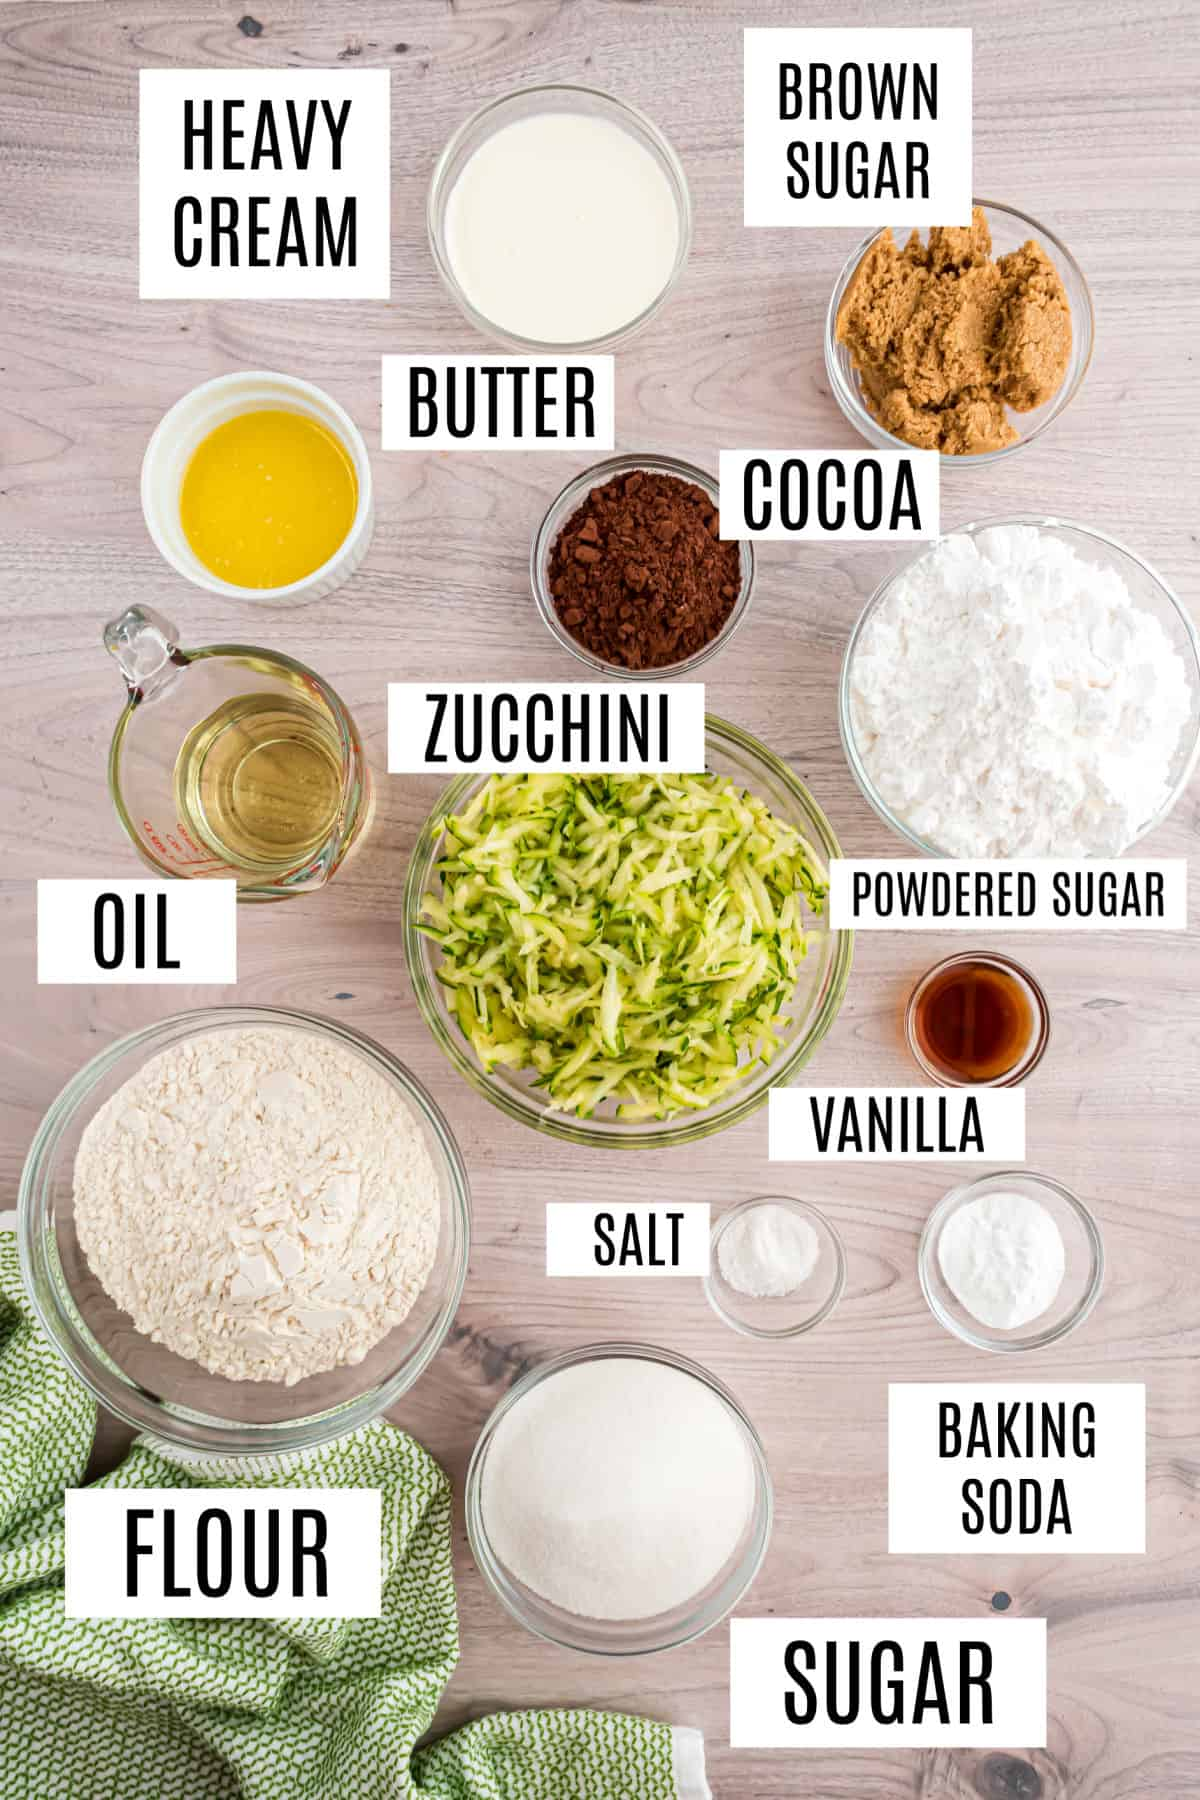 Ingredients needed for chocolate zucchini brownies.